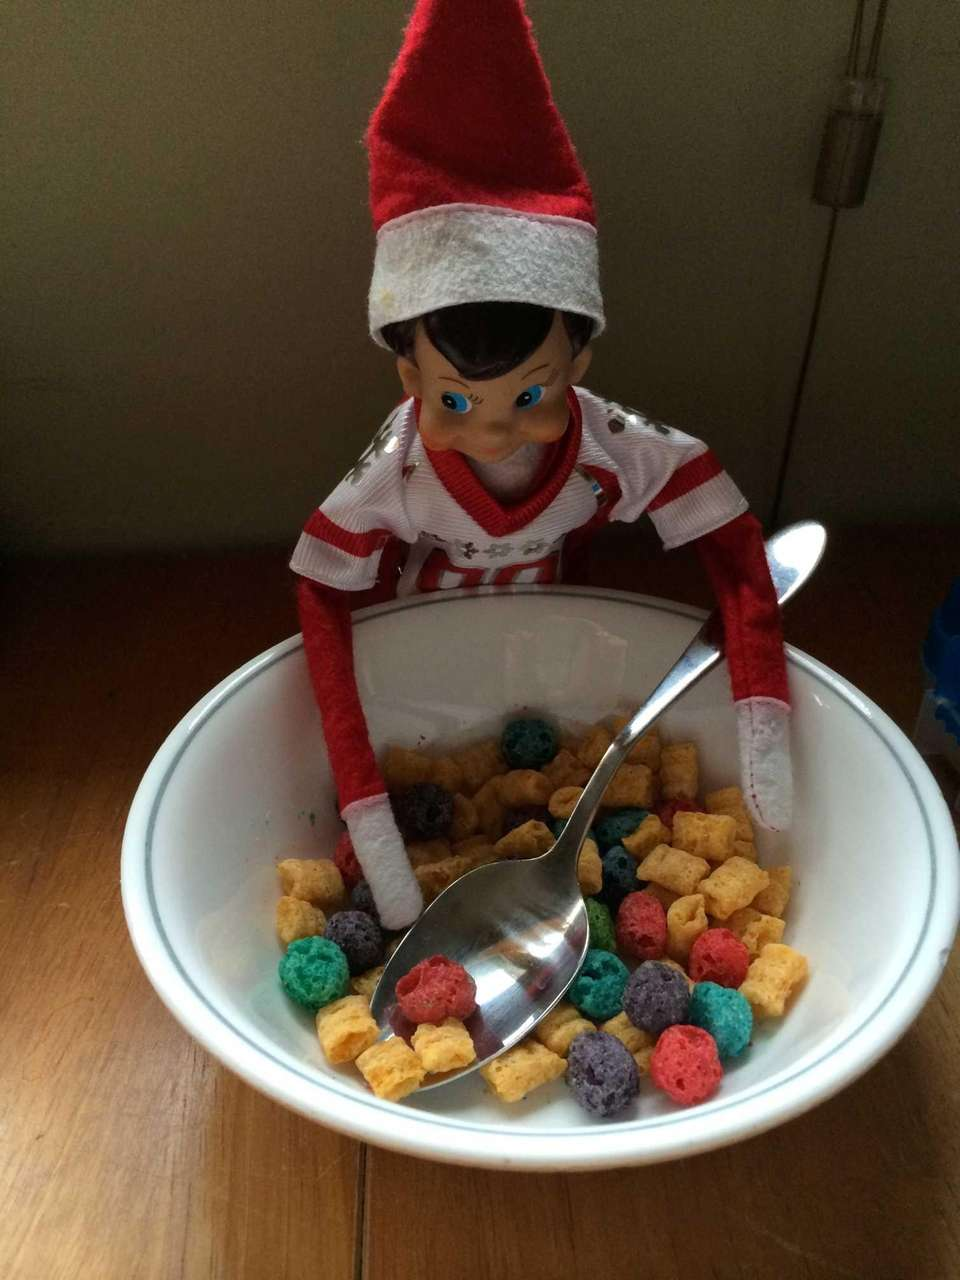 Our elf got into some mischief by eating